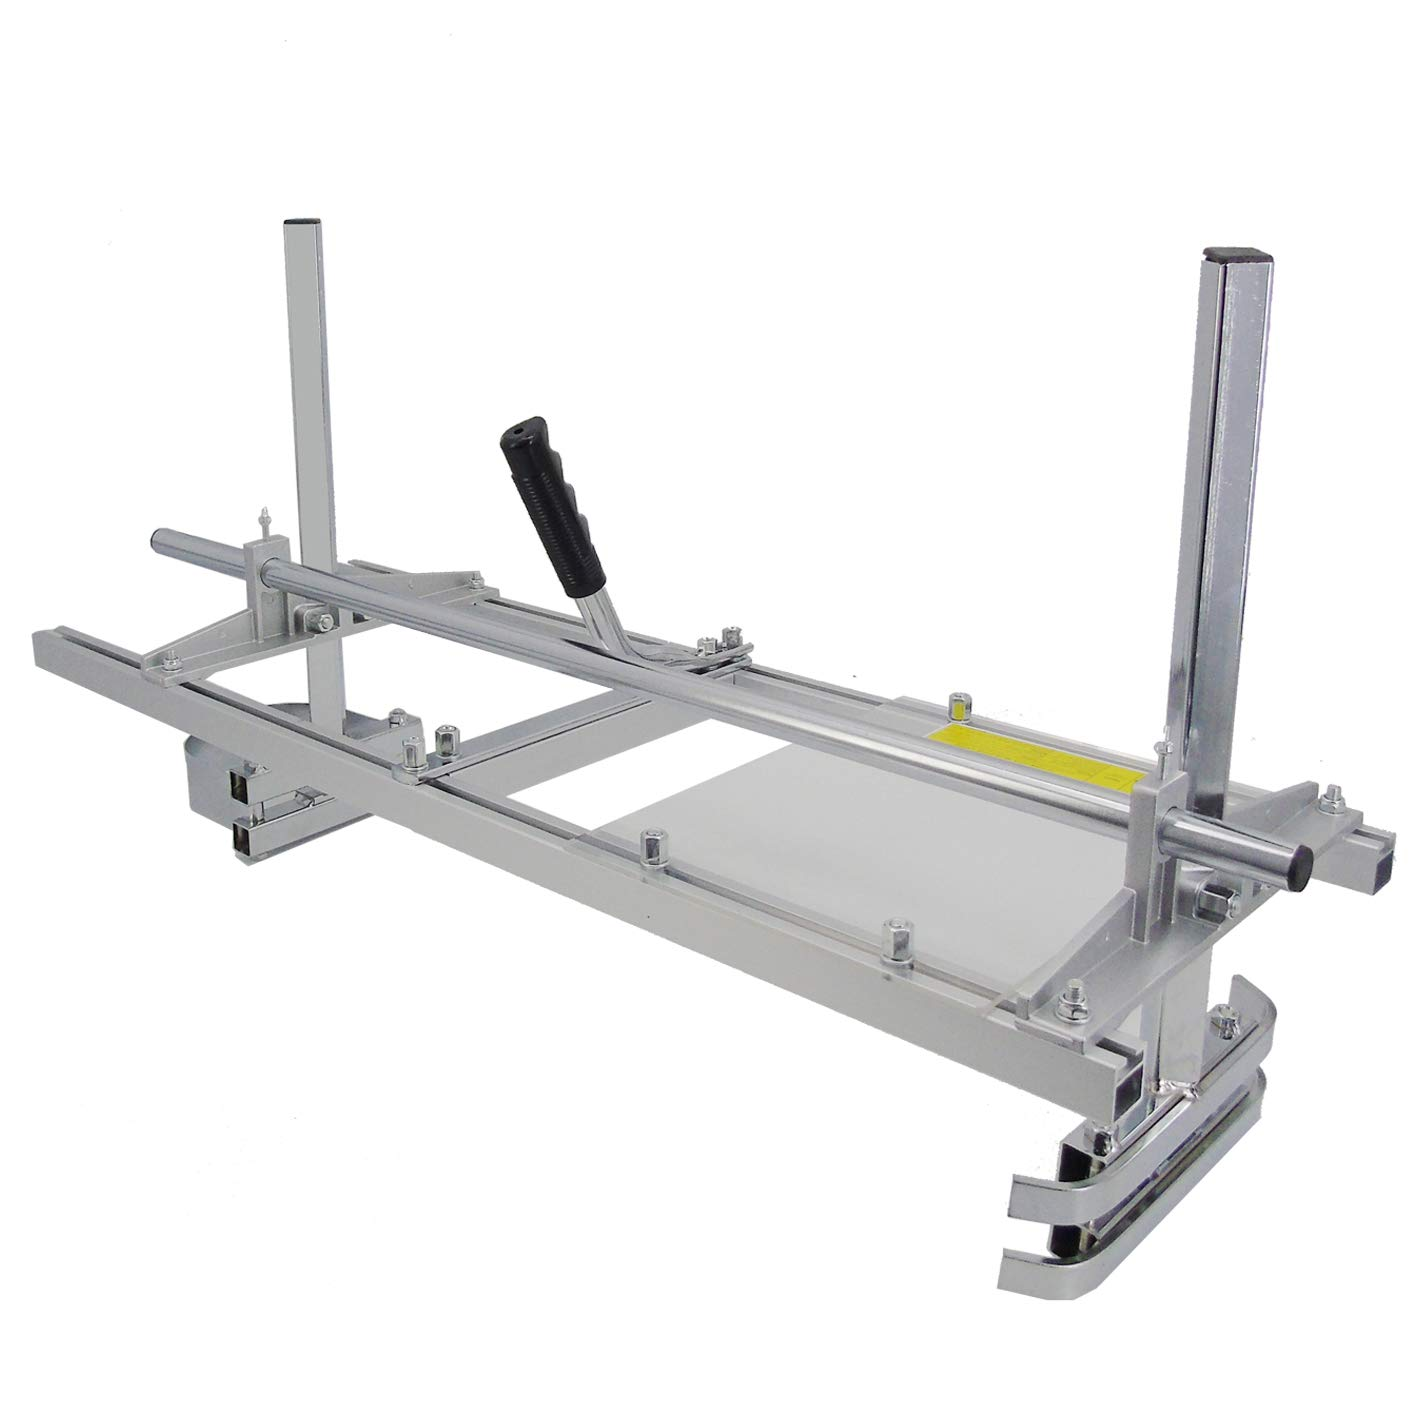 RCTEC Chainsaw Mill 48 Inch Portable Planking Milling Bar Size 14 to 48 Inch